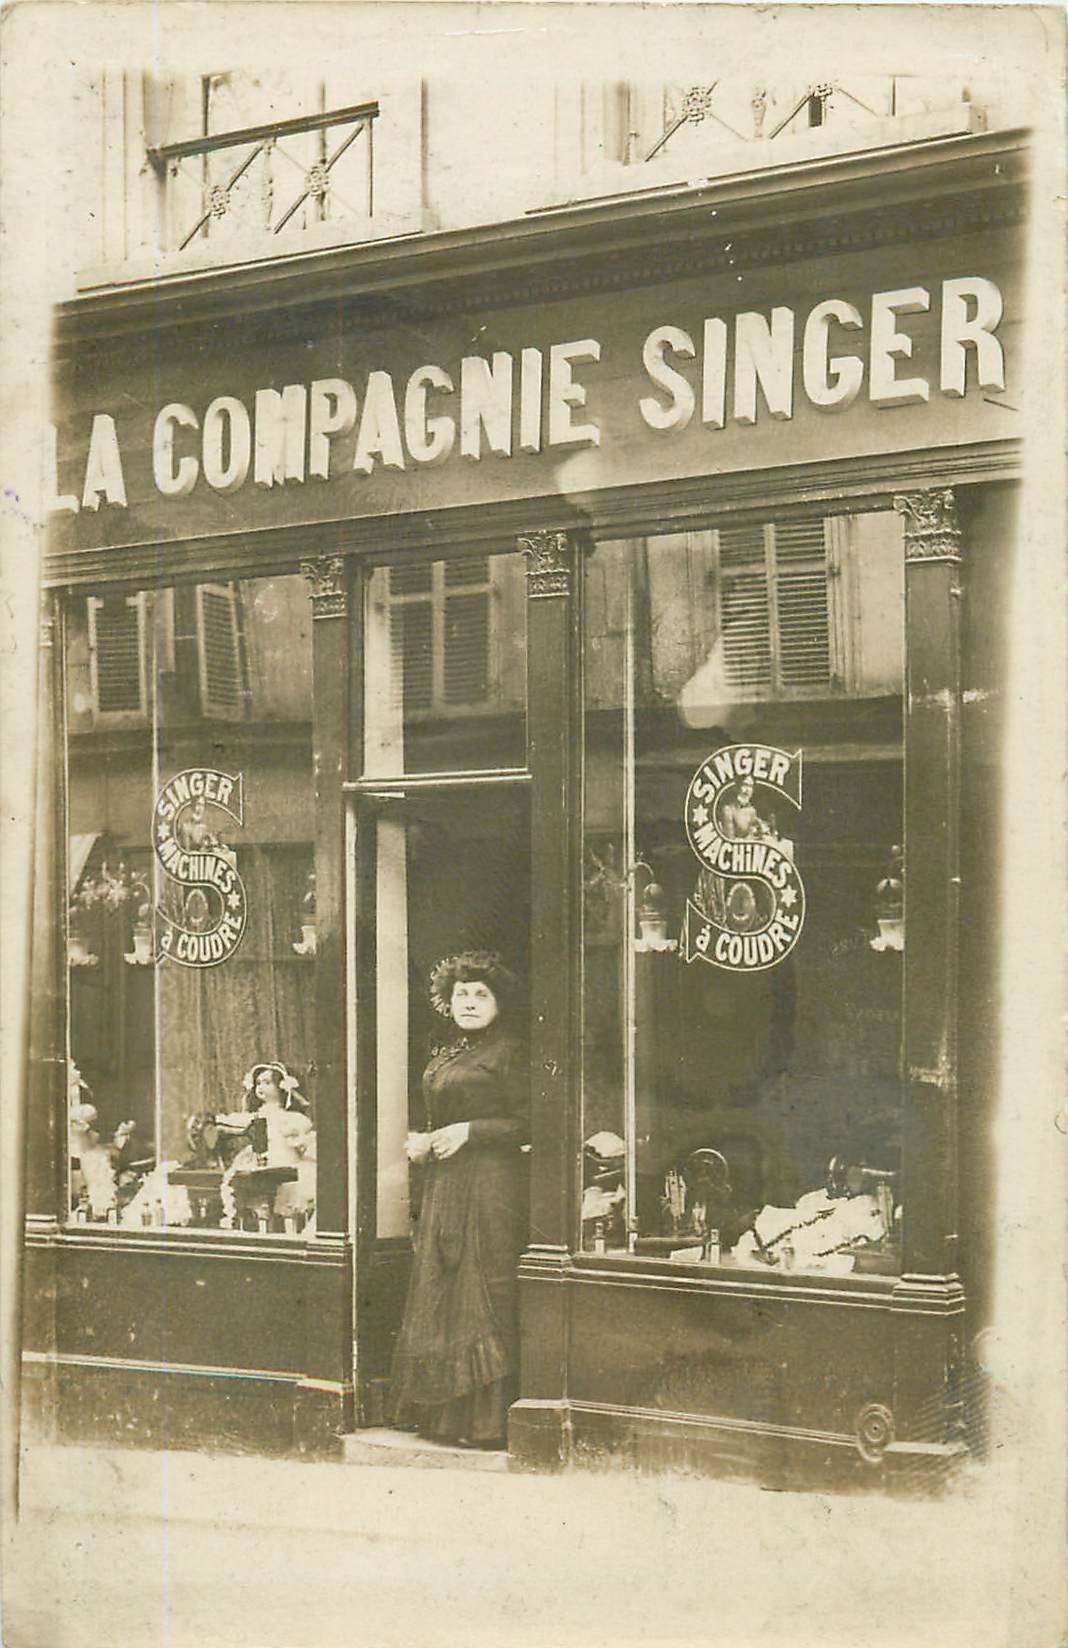 superbe et rare photo carte postale d 39 un magasin de la compagnie singer en vitrine poup e en. Black Bedroom Furniture Sets. Home Design Ideas